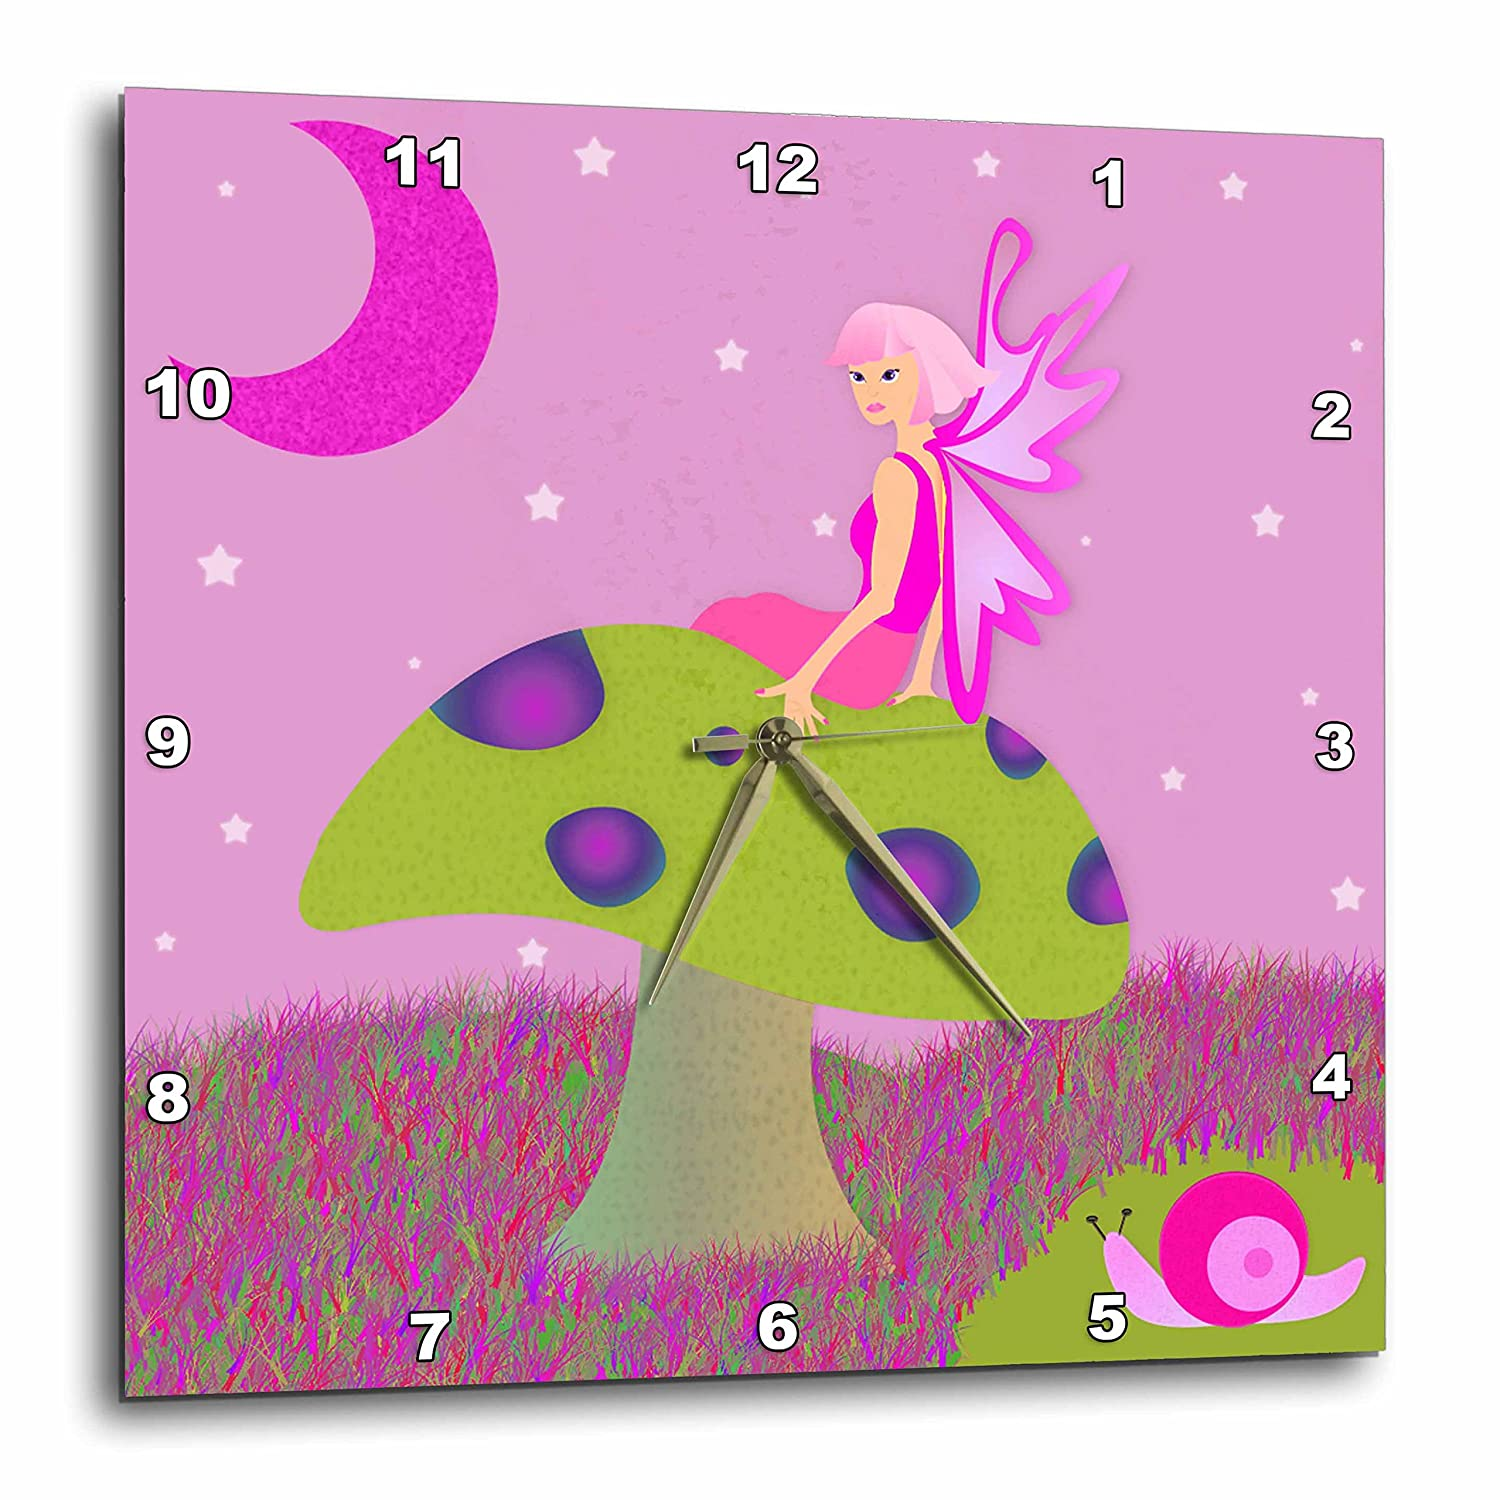 3dRose dpp_24676_2 Cute Fairy Princess Girl on Toadstool with Snail Pink-Wall Clock, 13 by 13-Inch